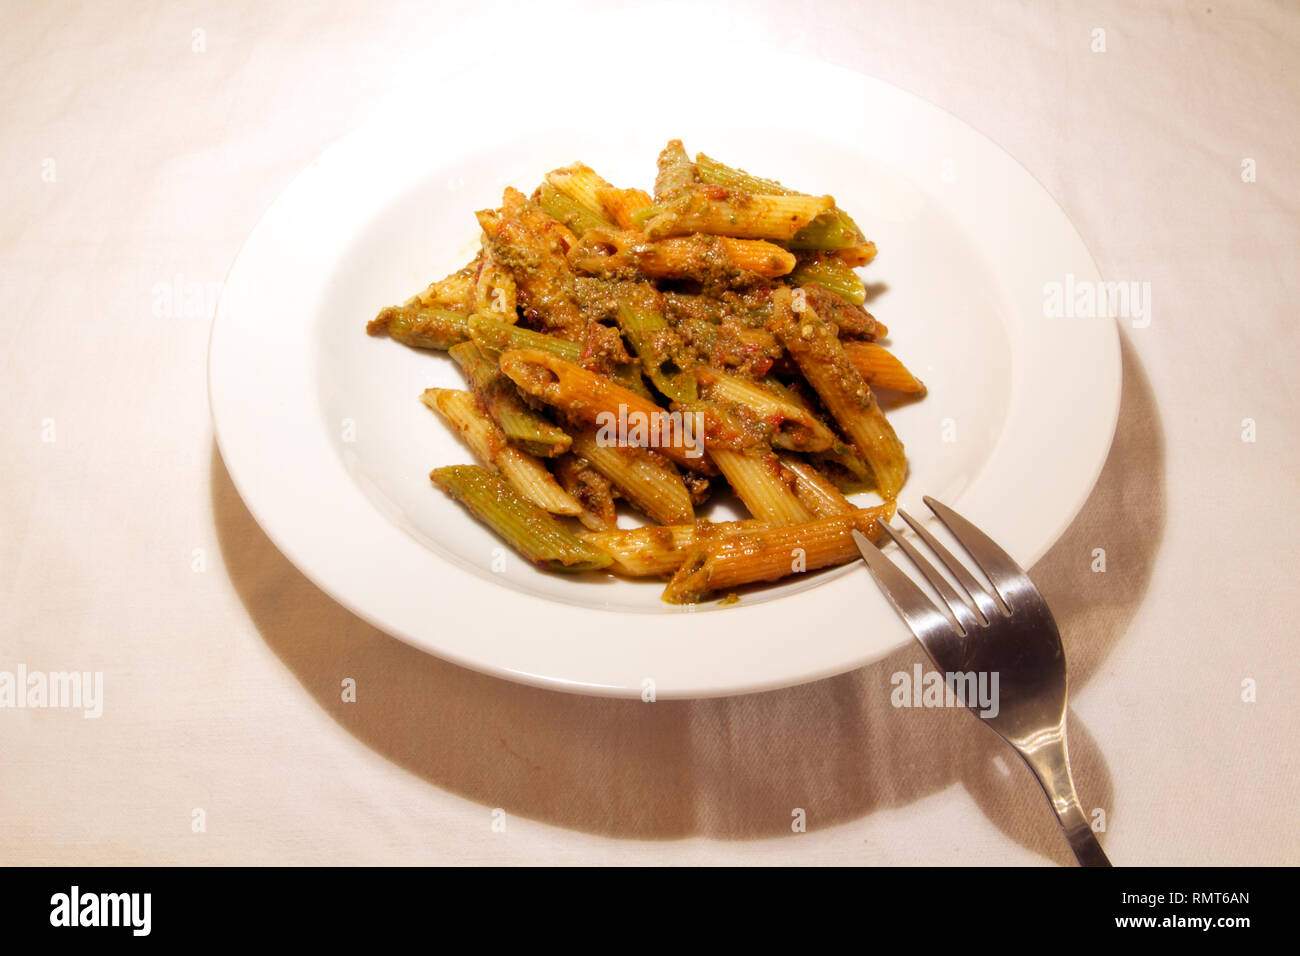 Dubai-Penne pasta cooked with sauce served on a white plate 1 - Stock Image